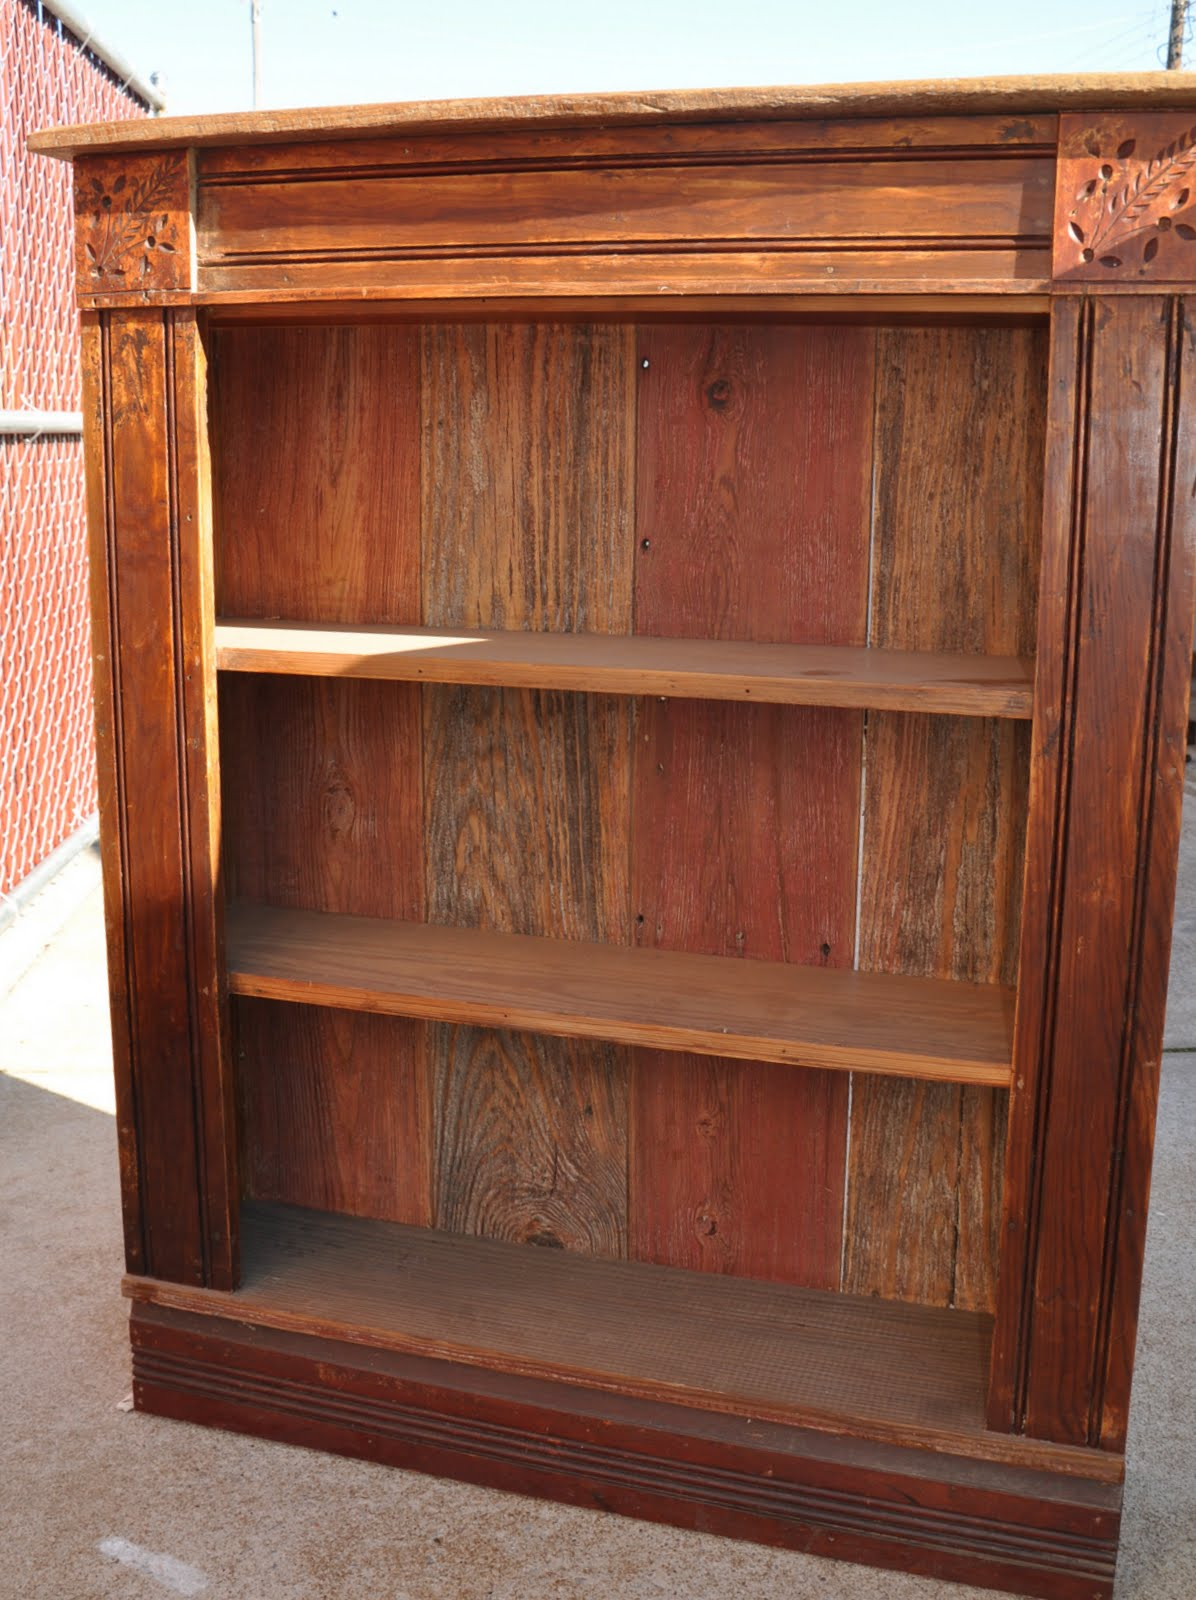 Oklahoma Barn Market Reclaimed Barnwood Shelf